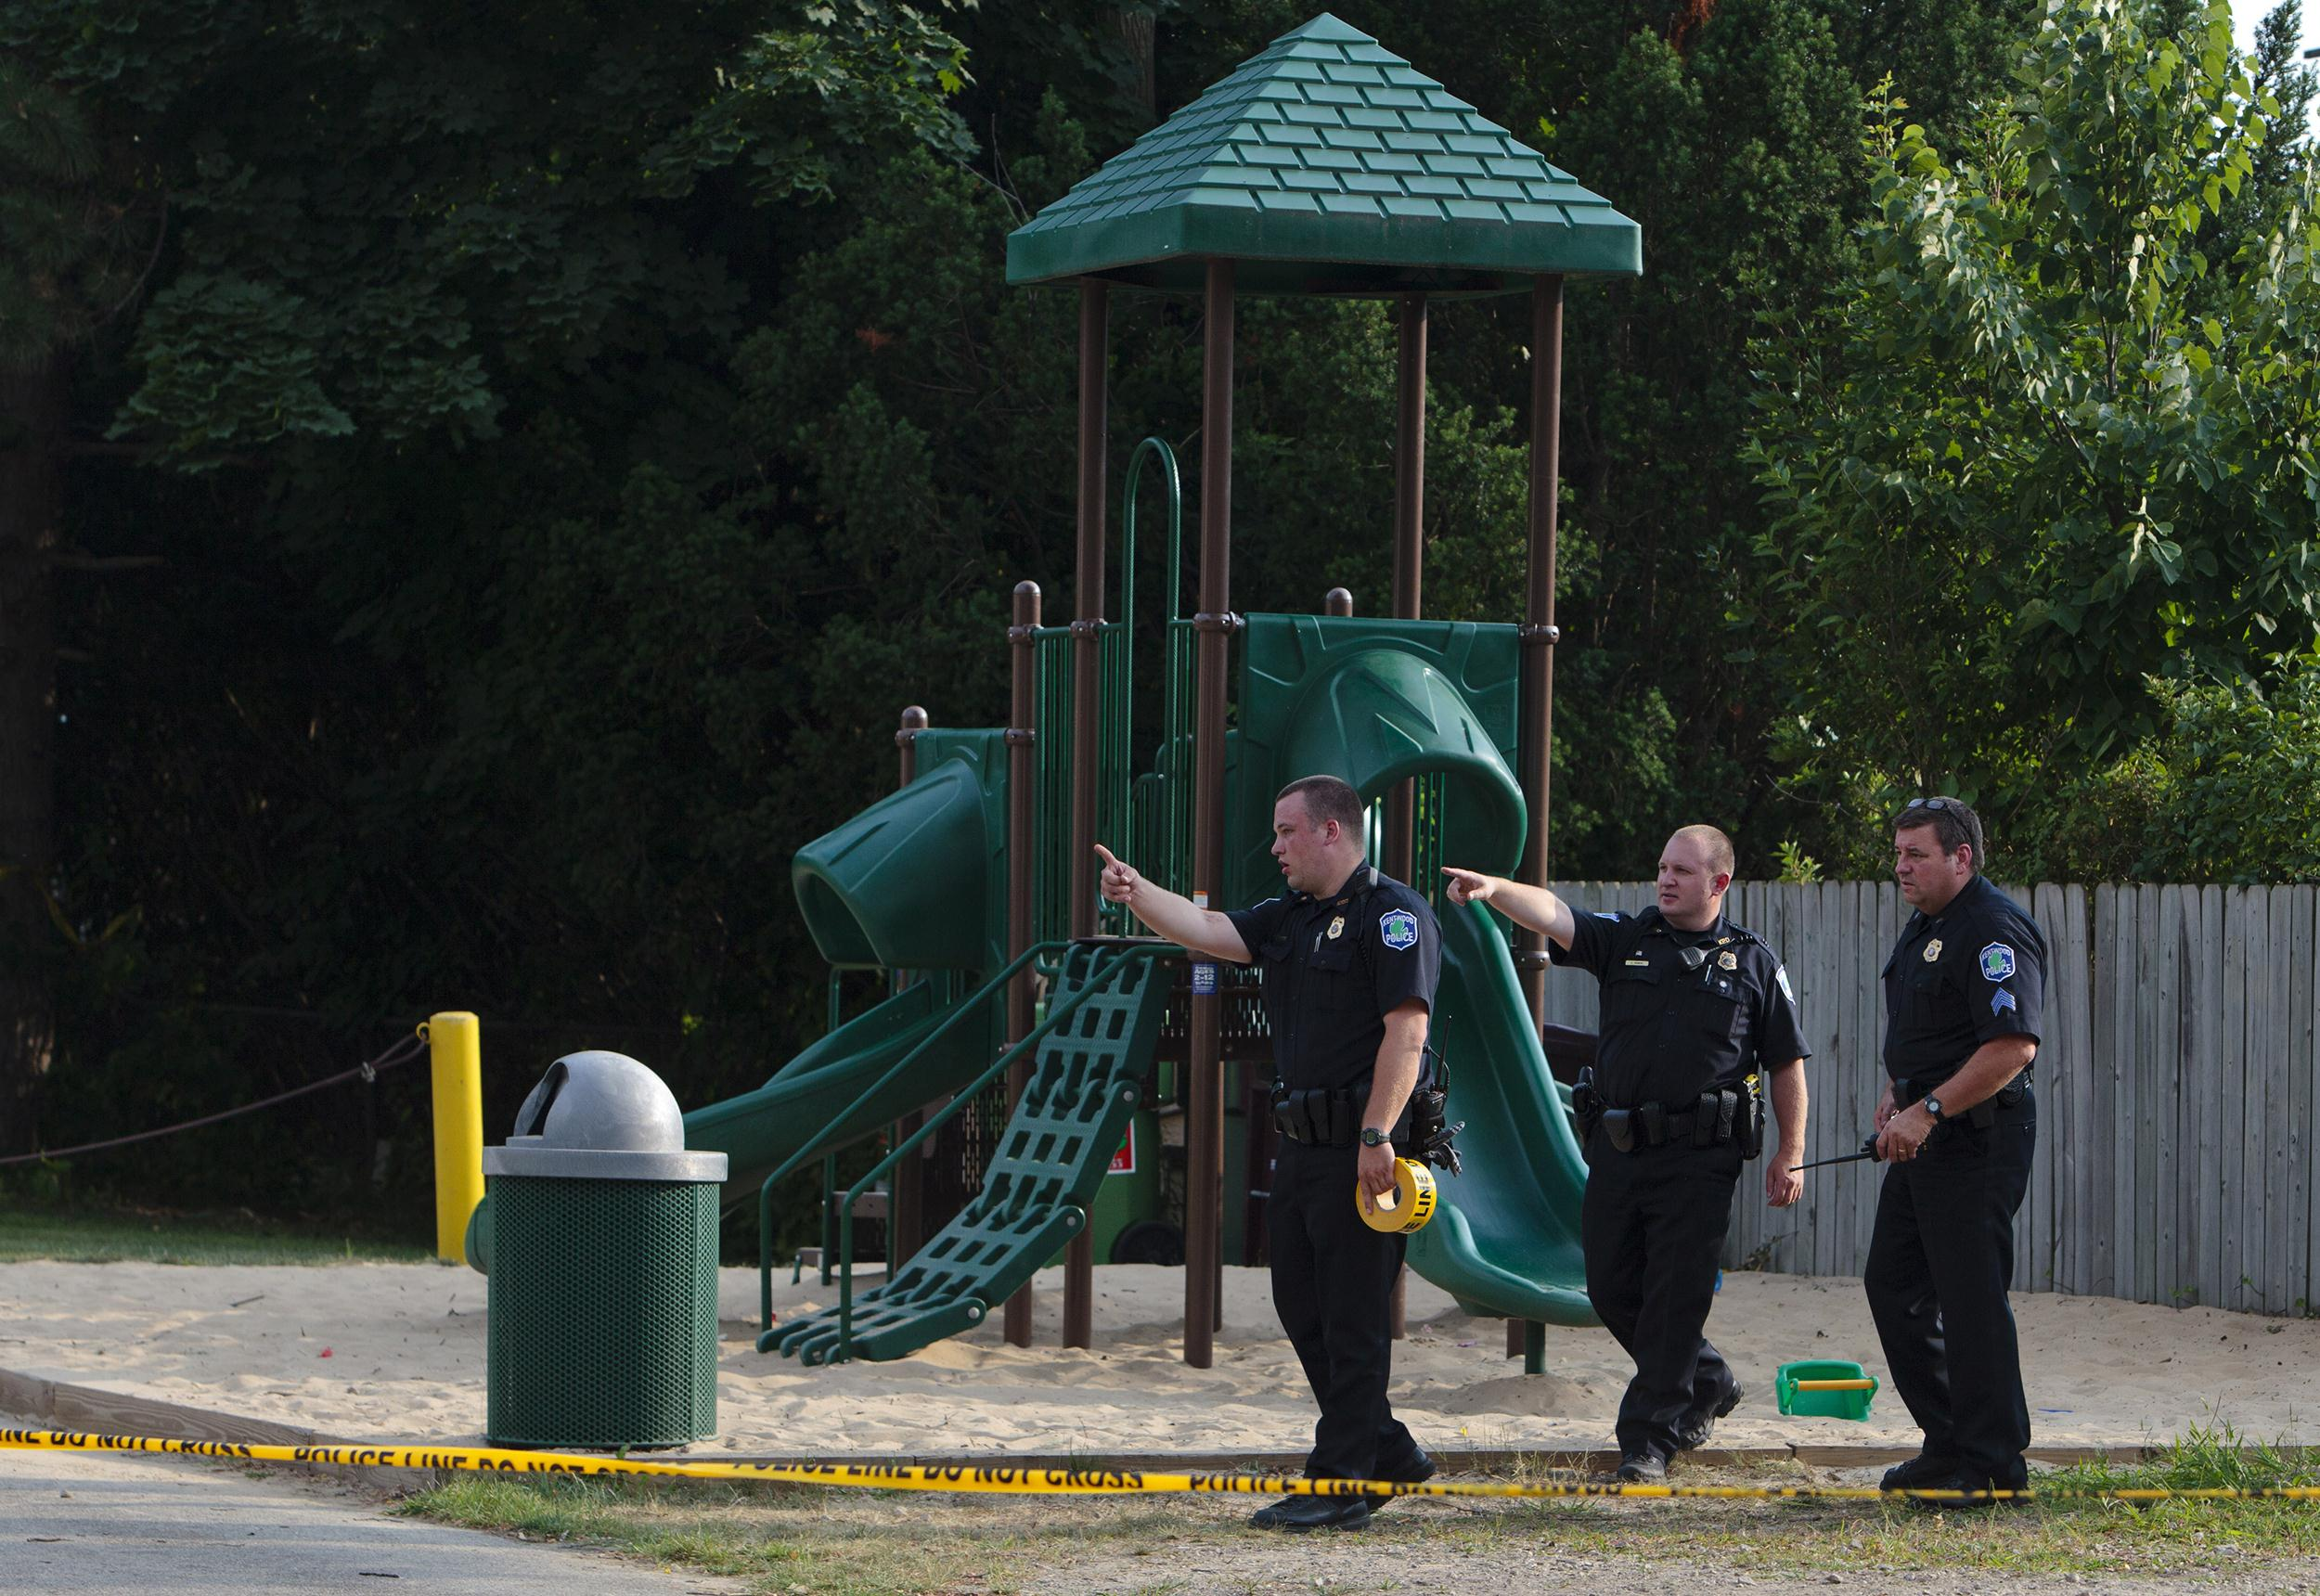 Image: Kentwood police investigate a stabbing that occurred in a playground in Pinebrook Village, in Kentwood, Mich., on Aug. 4